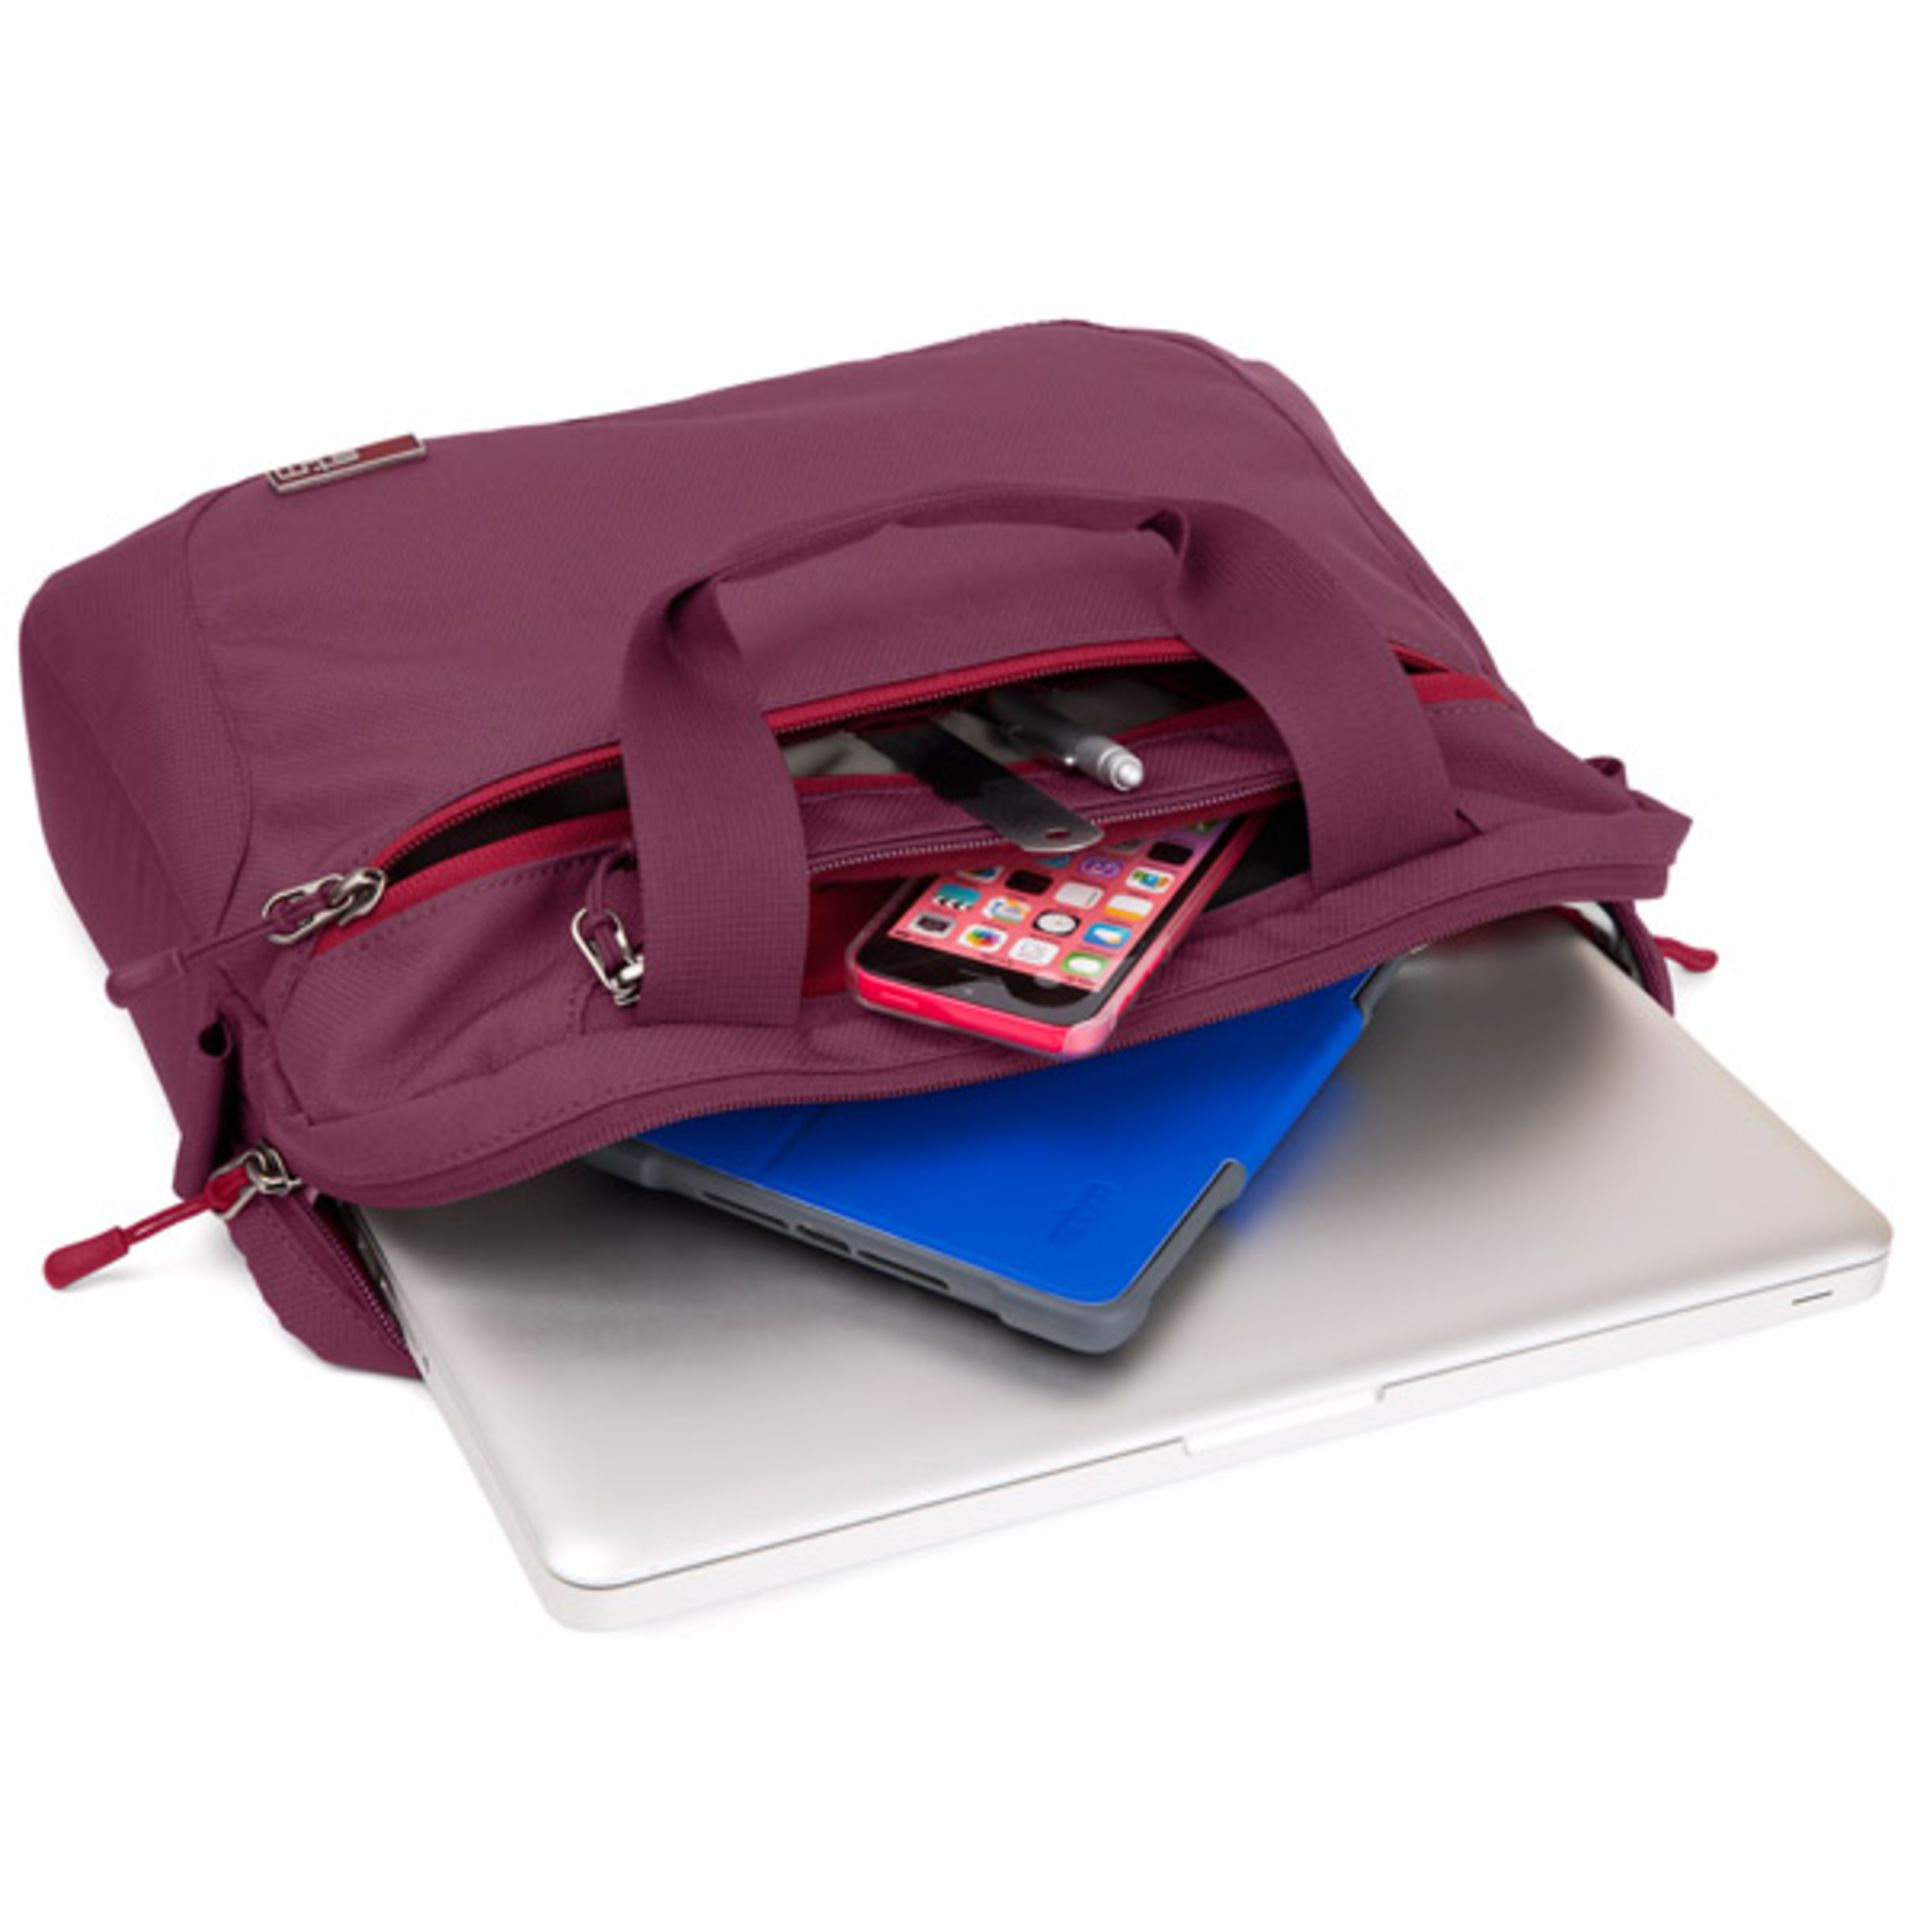 + VAT Brand New Medium Shoulder Bag - RRP £42.99 Amazon Price £33.57 - For Laptop/Tablet Up To